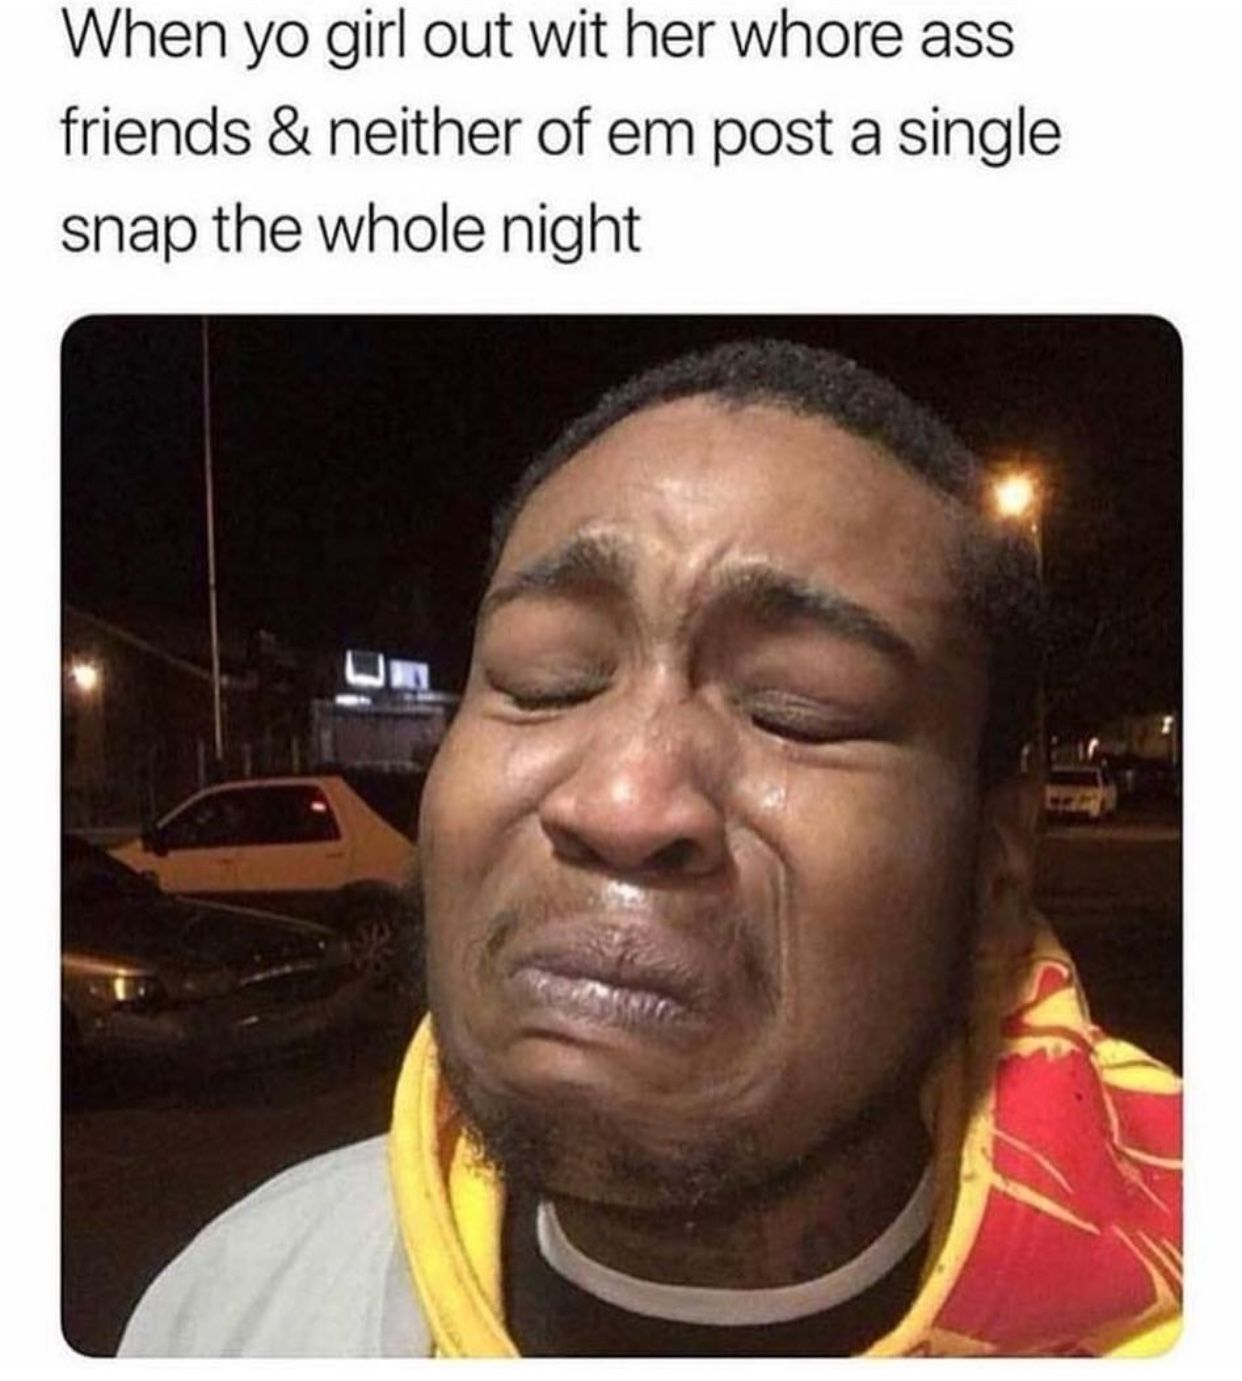 Pin by Mani MyJhè 🥀 on Post. 4 (With images) | Meme faces ...